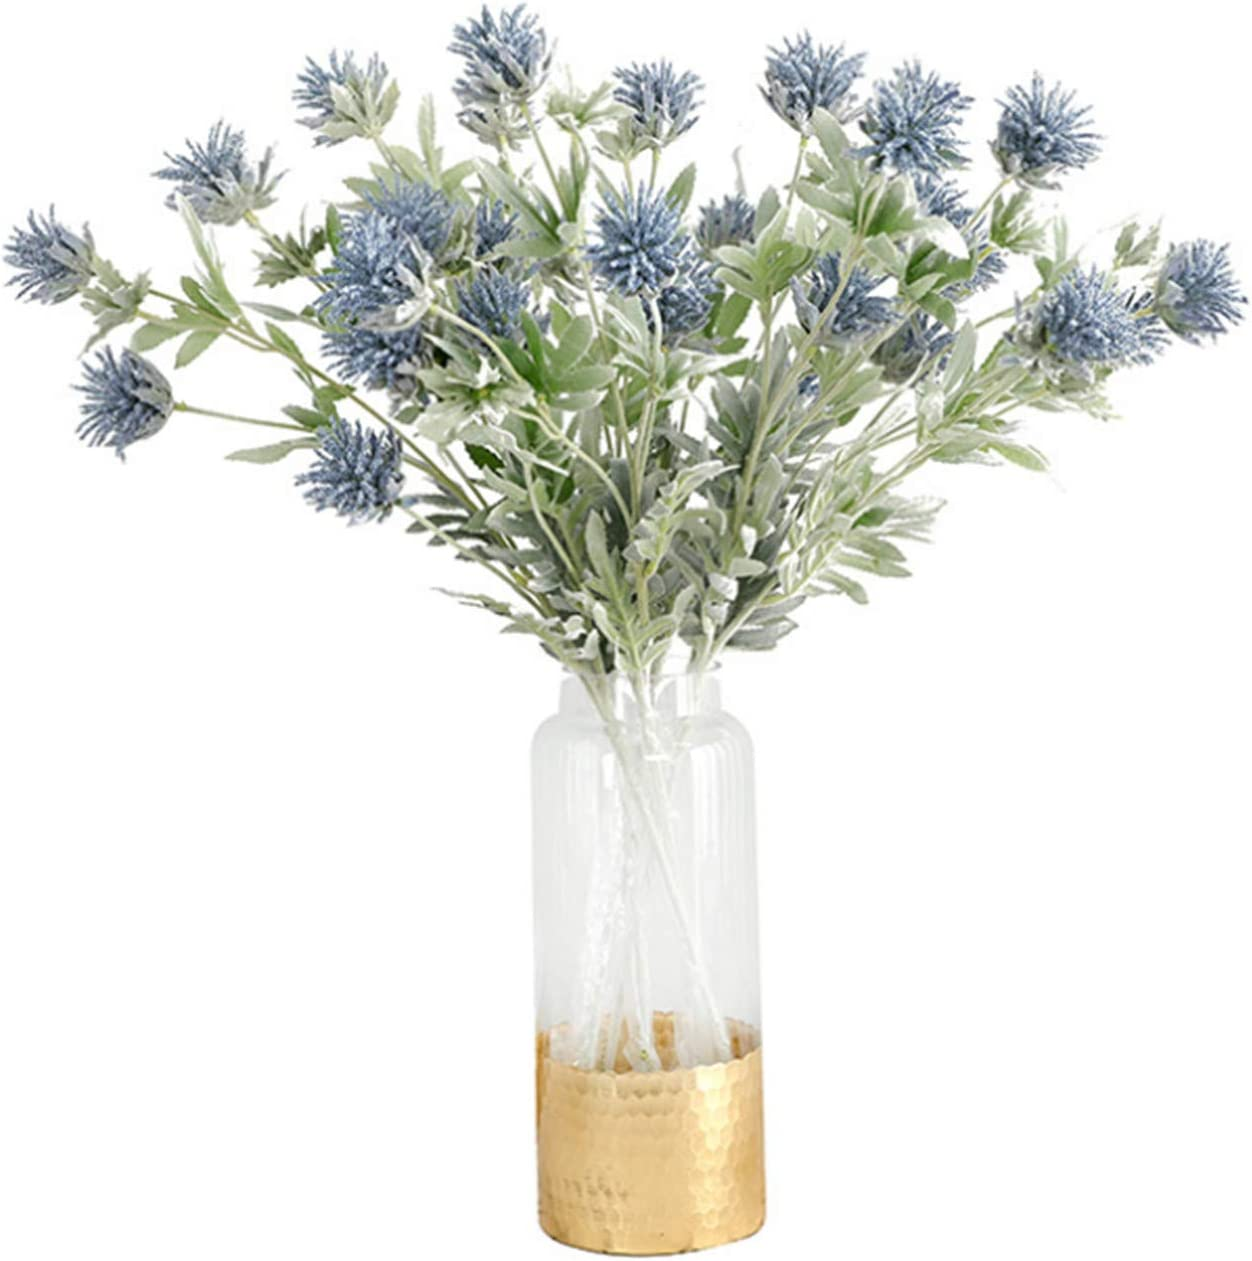 Skyseen 3PCS Artificial Flowers Thistle Spray Eryngo Single Spray